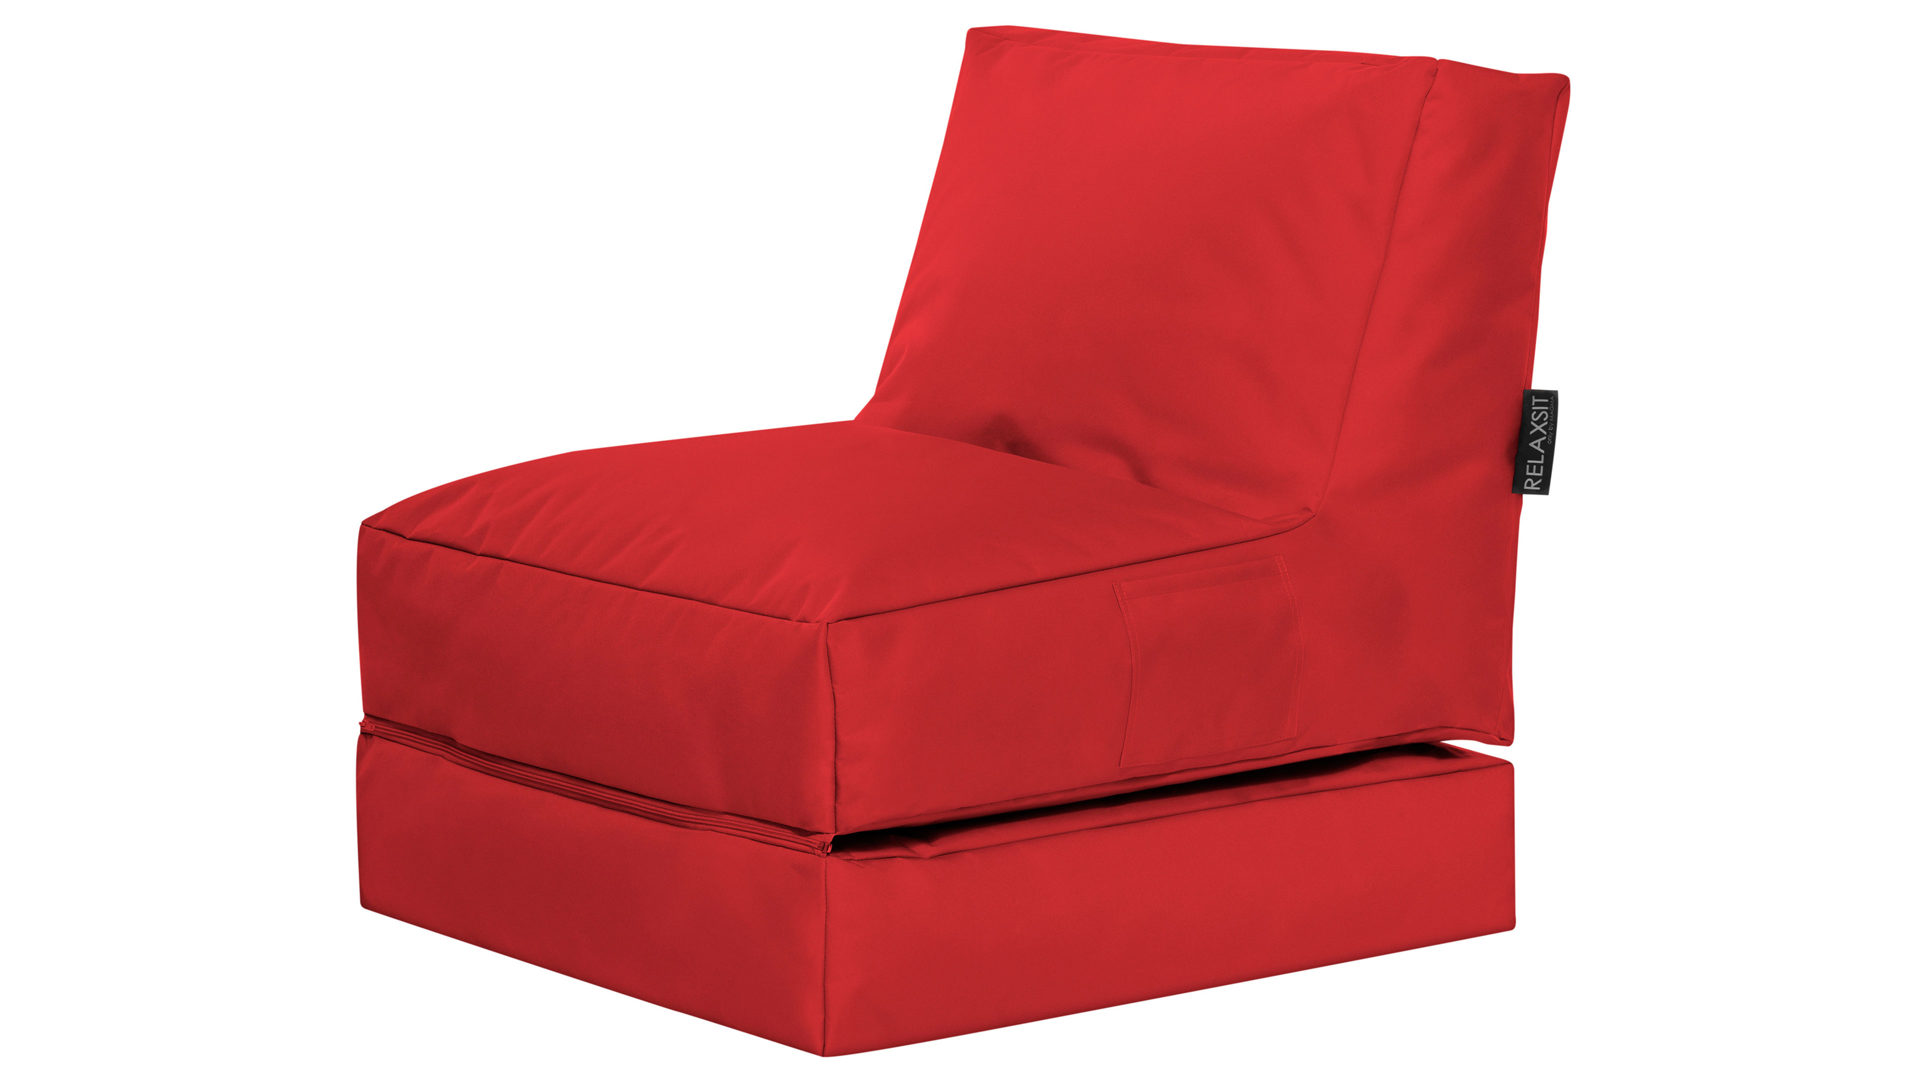 Roter Sitzsack Sitting Point Funktions Sitzsack Twist Scuba Roter